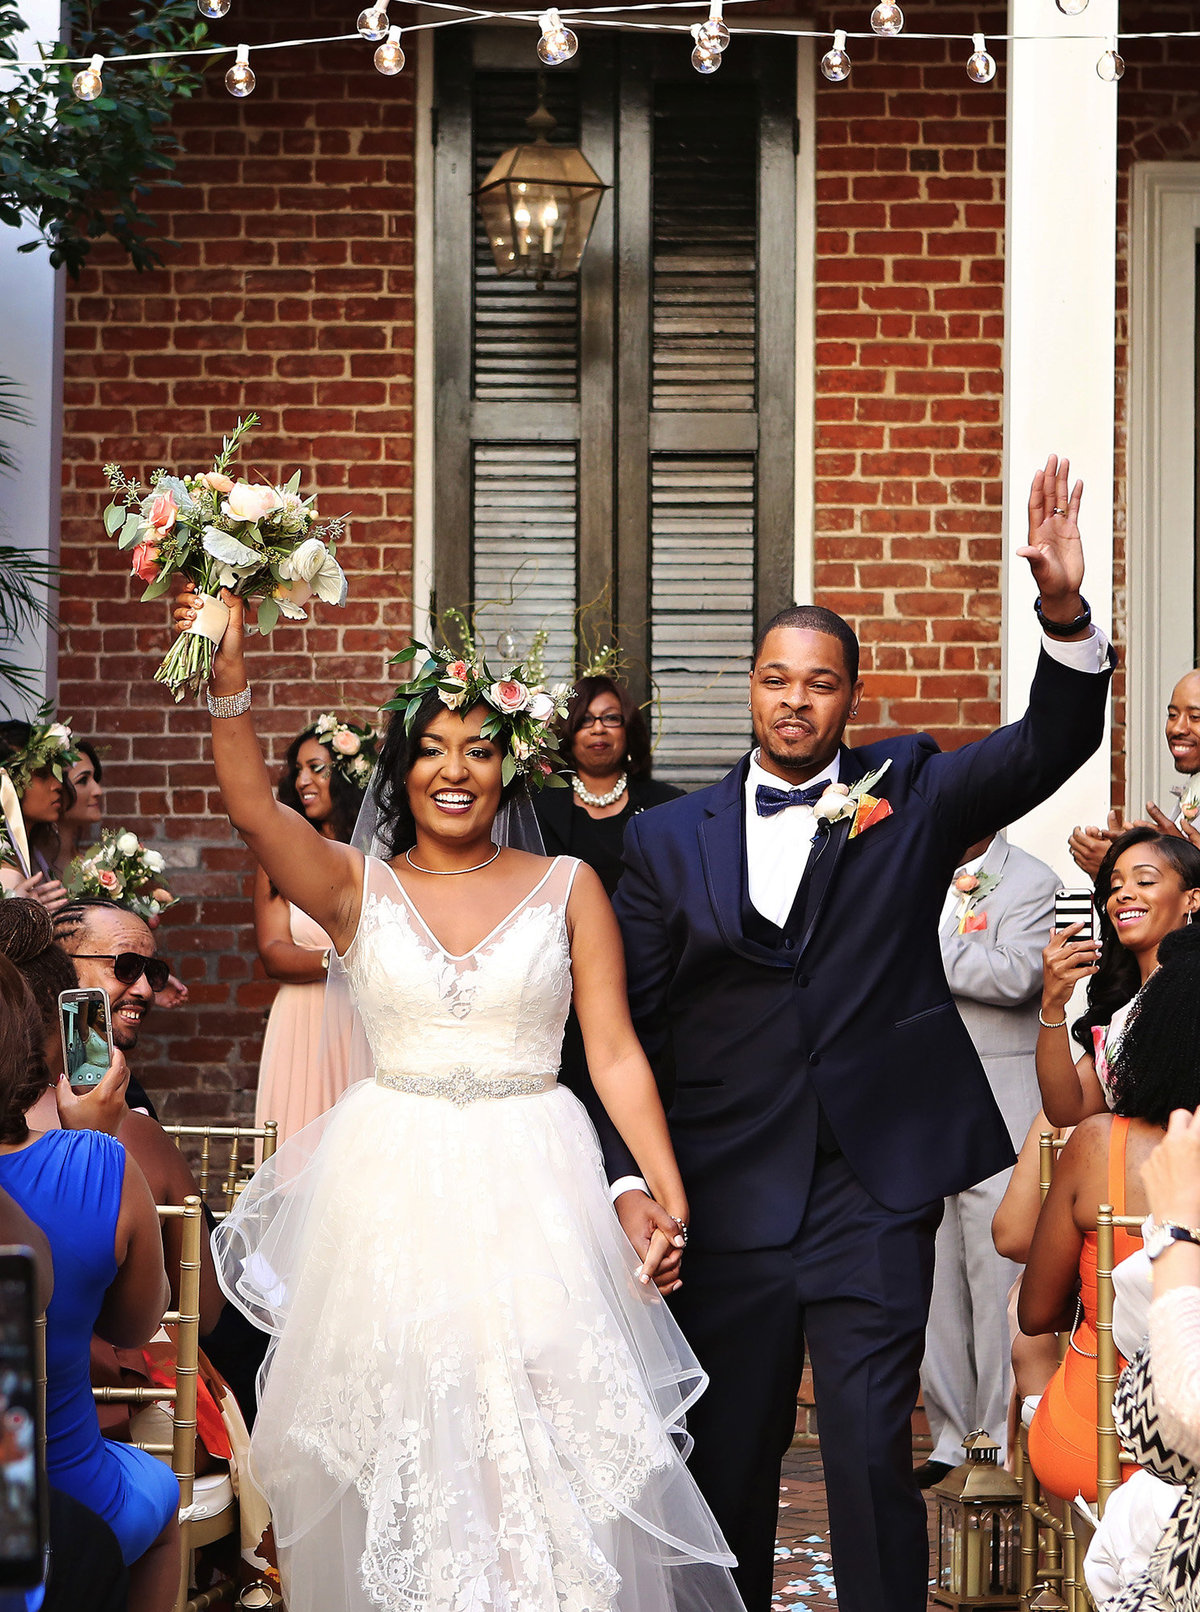 nola bride and groom walking down the aisle